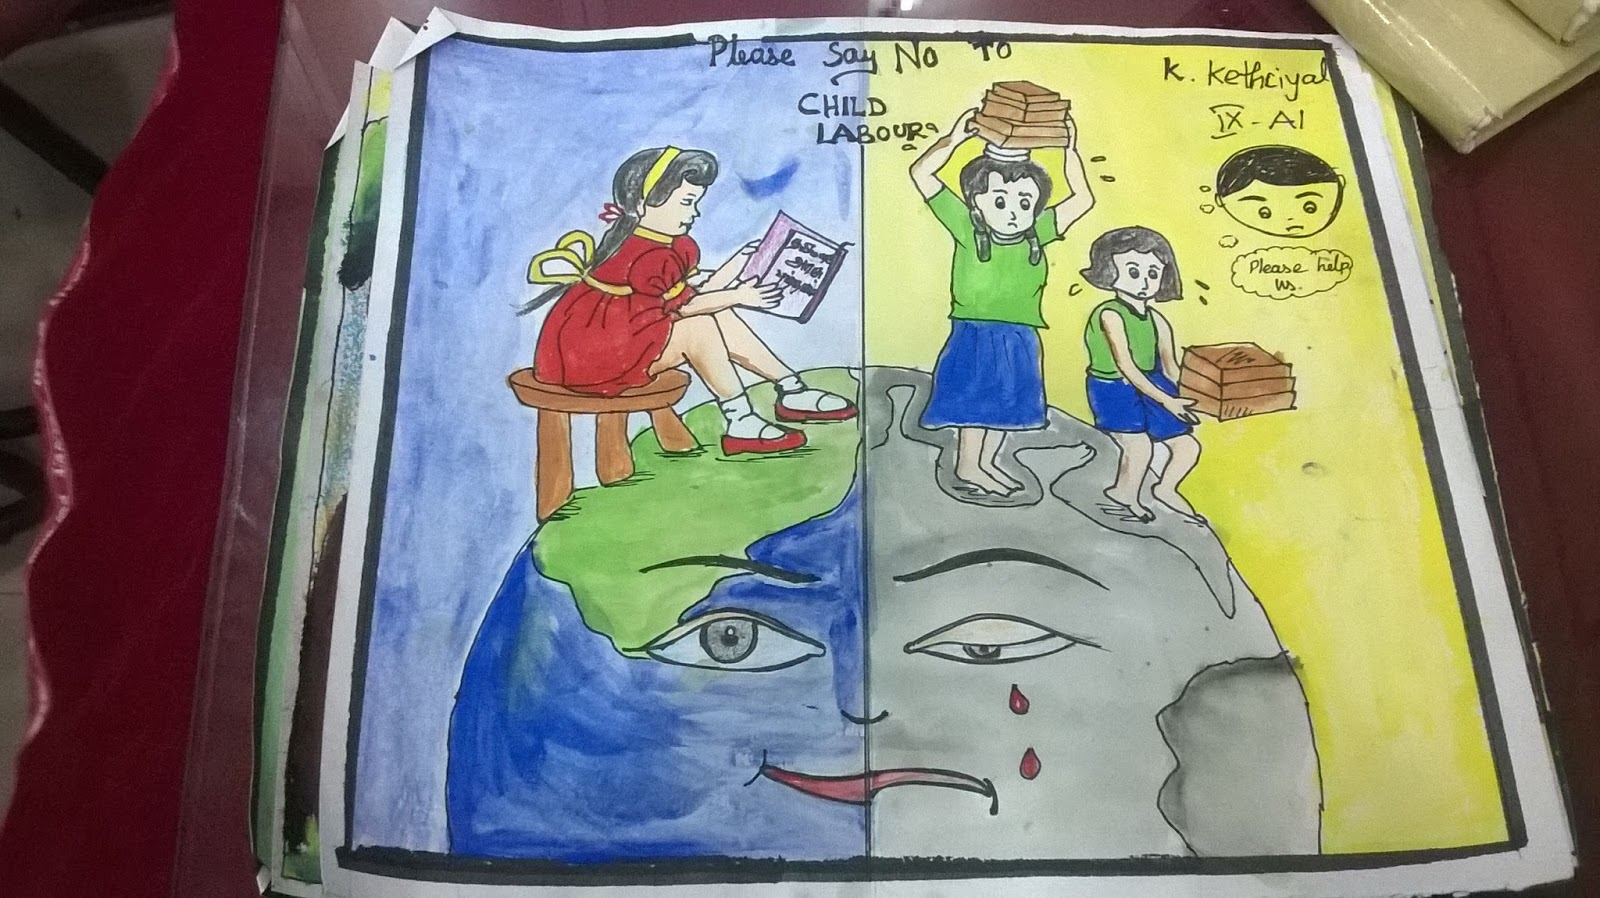 Easy Drawing For Child Labour Children Without A Childhood Child